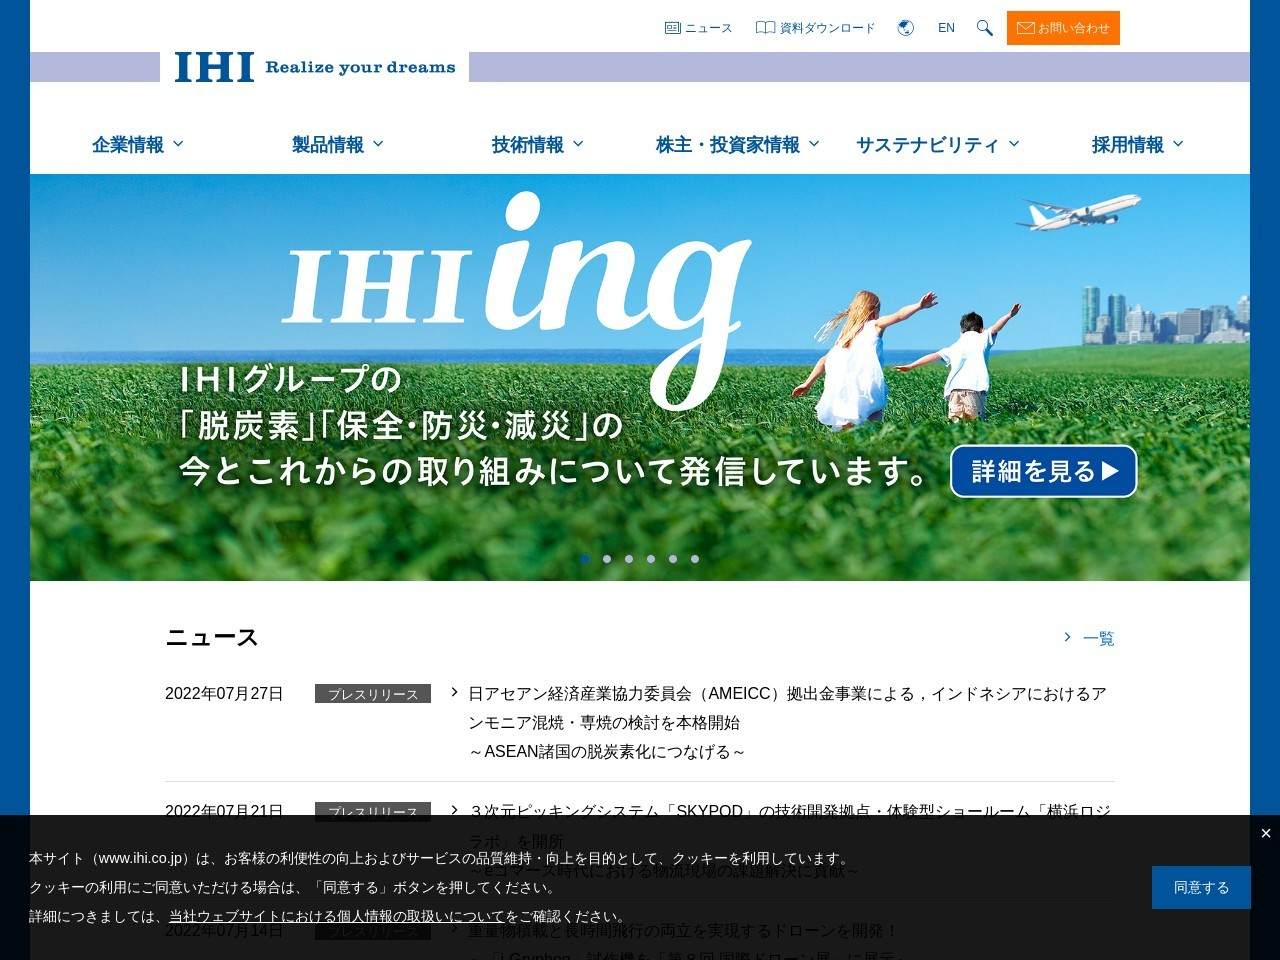 https://www.ihi.co.jp/inc/recruit/recruit01.html